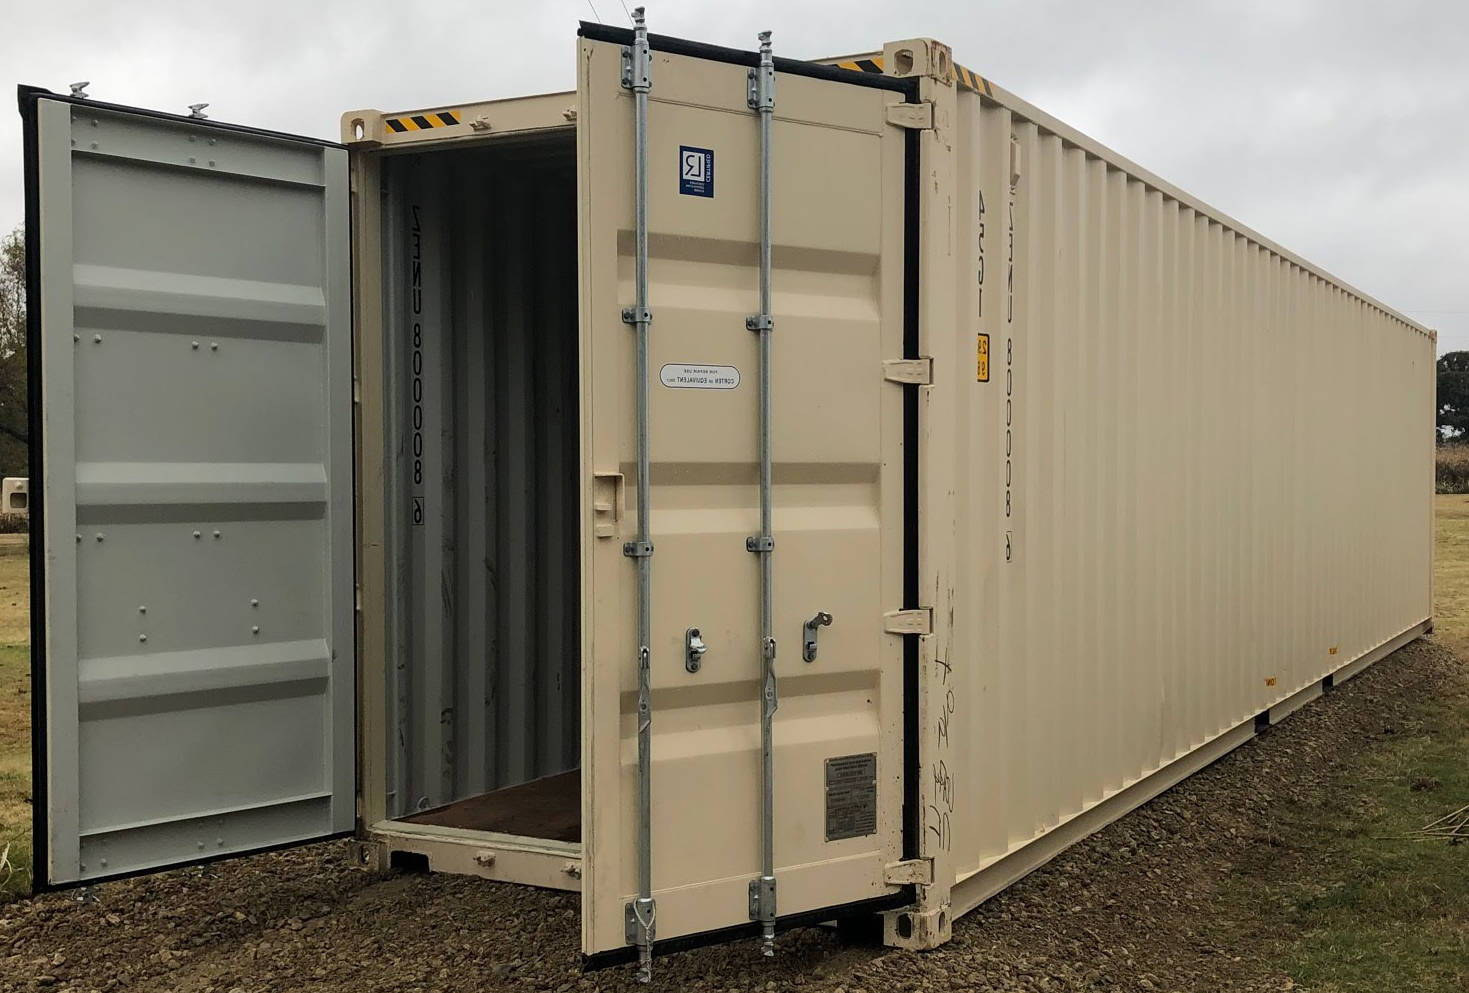 40 foot high cube shipping container side view with doors open